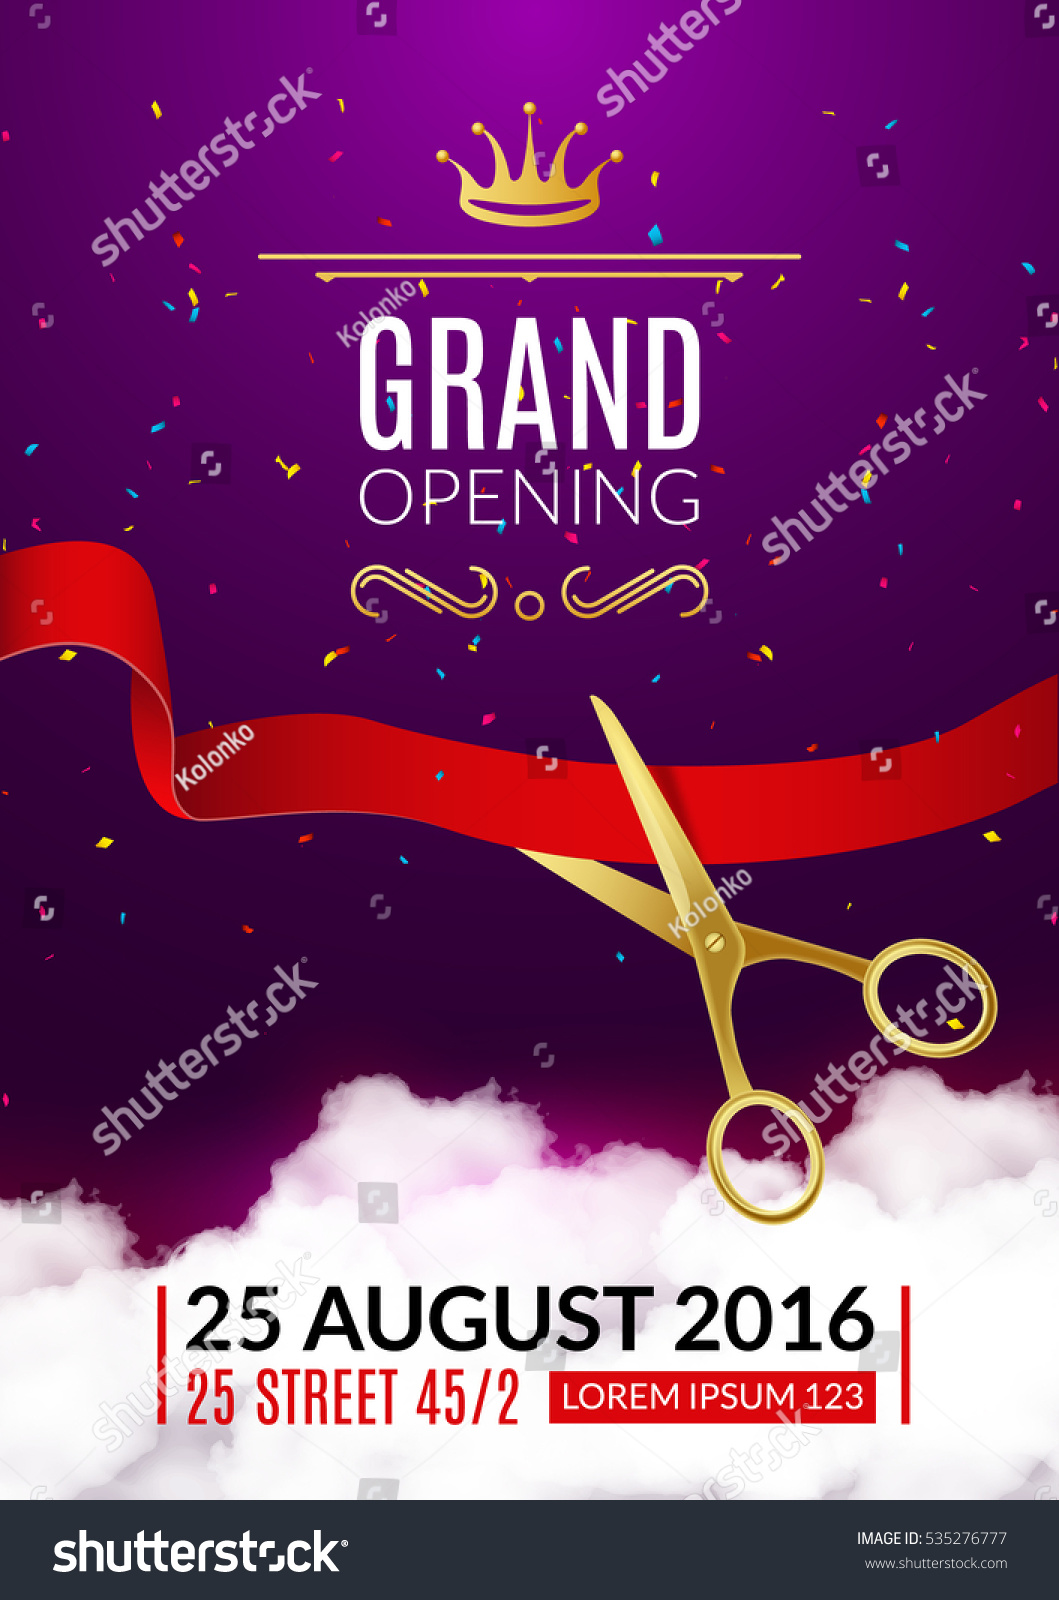 Grand Opening Invitation Card Grand Opening Vector 535276777 – Grand Opening Flyer